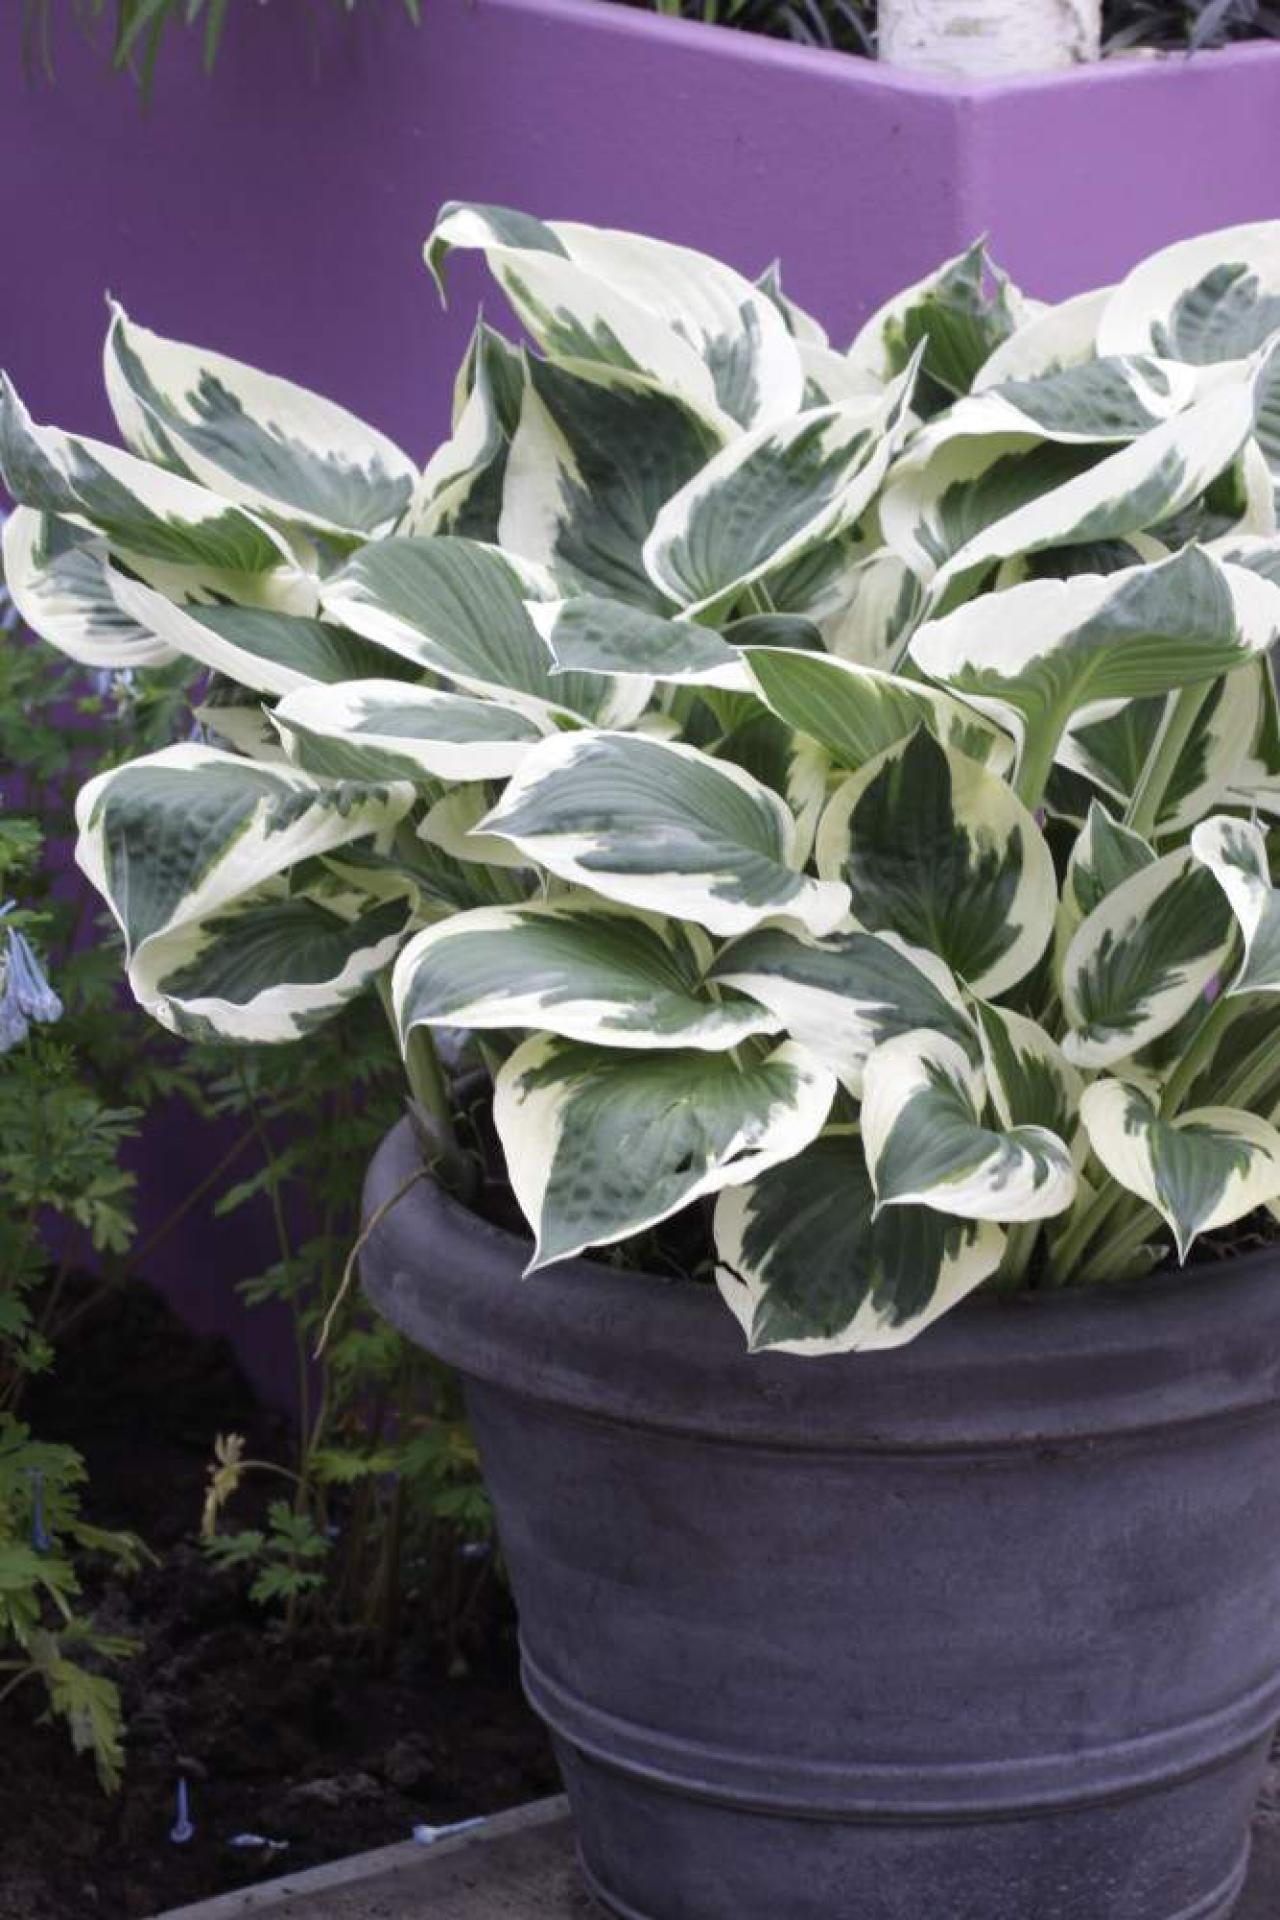 When can you transplant hostas?